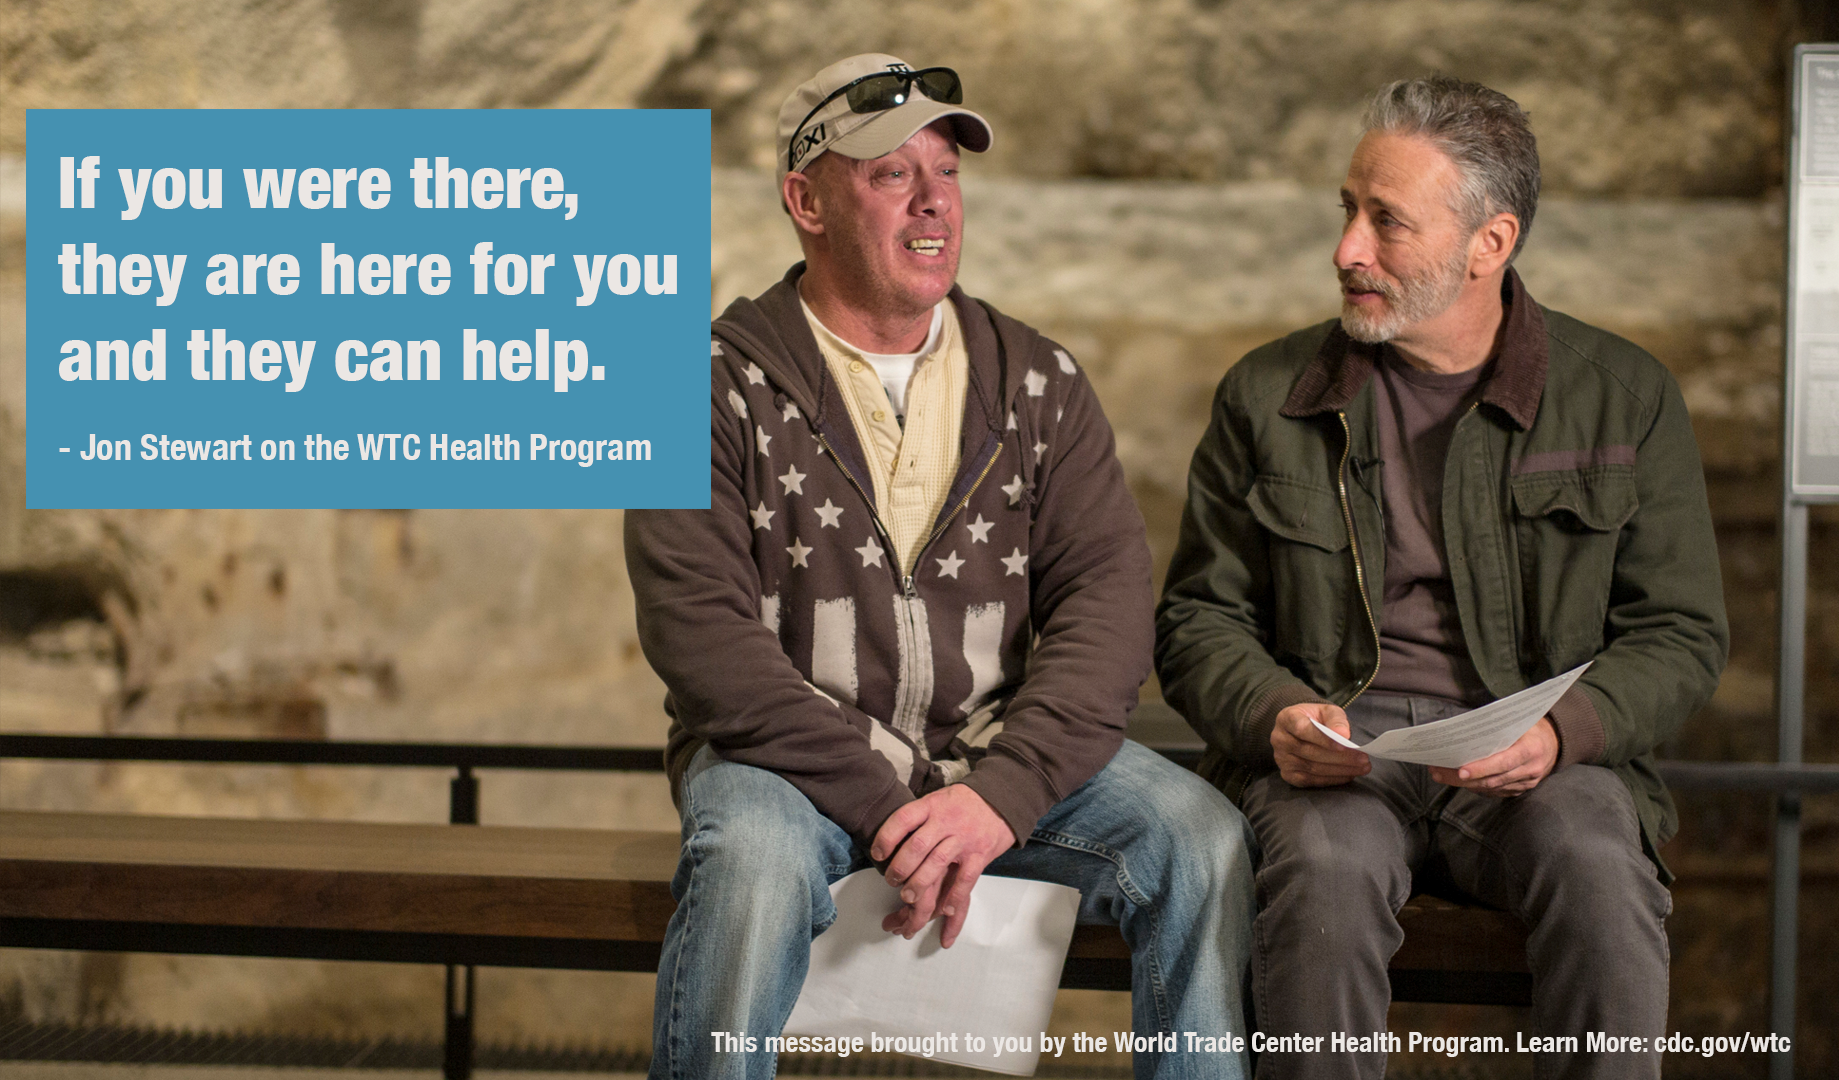 If you were there, they are here for you and they can help - Jon Stewart